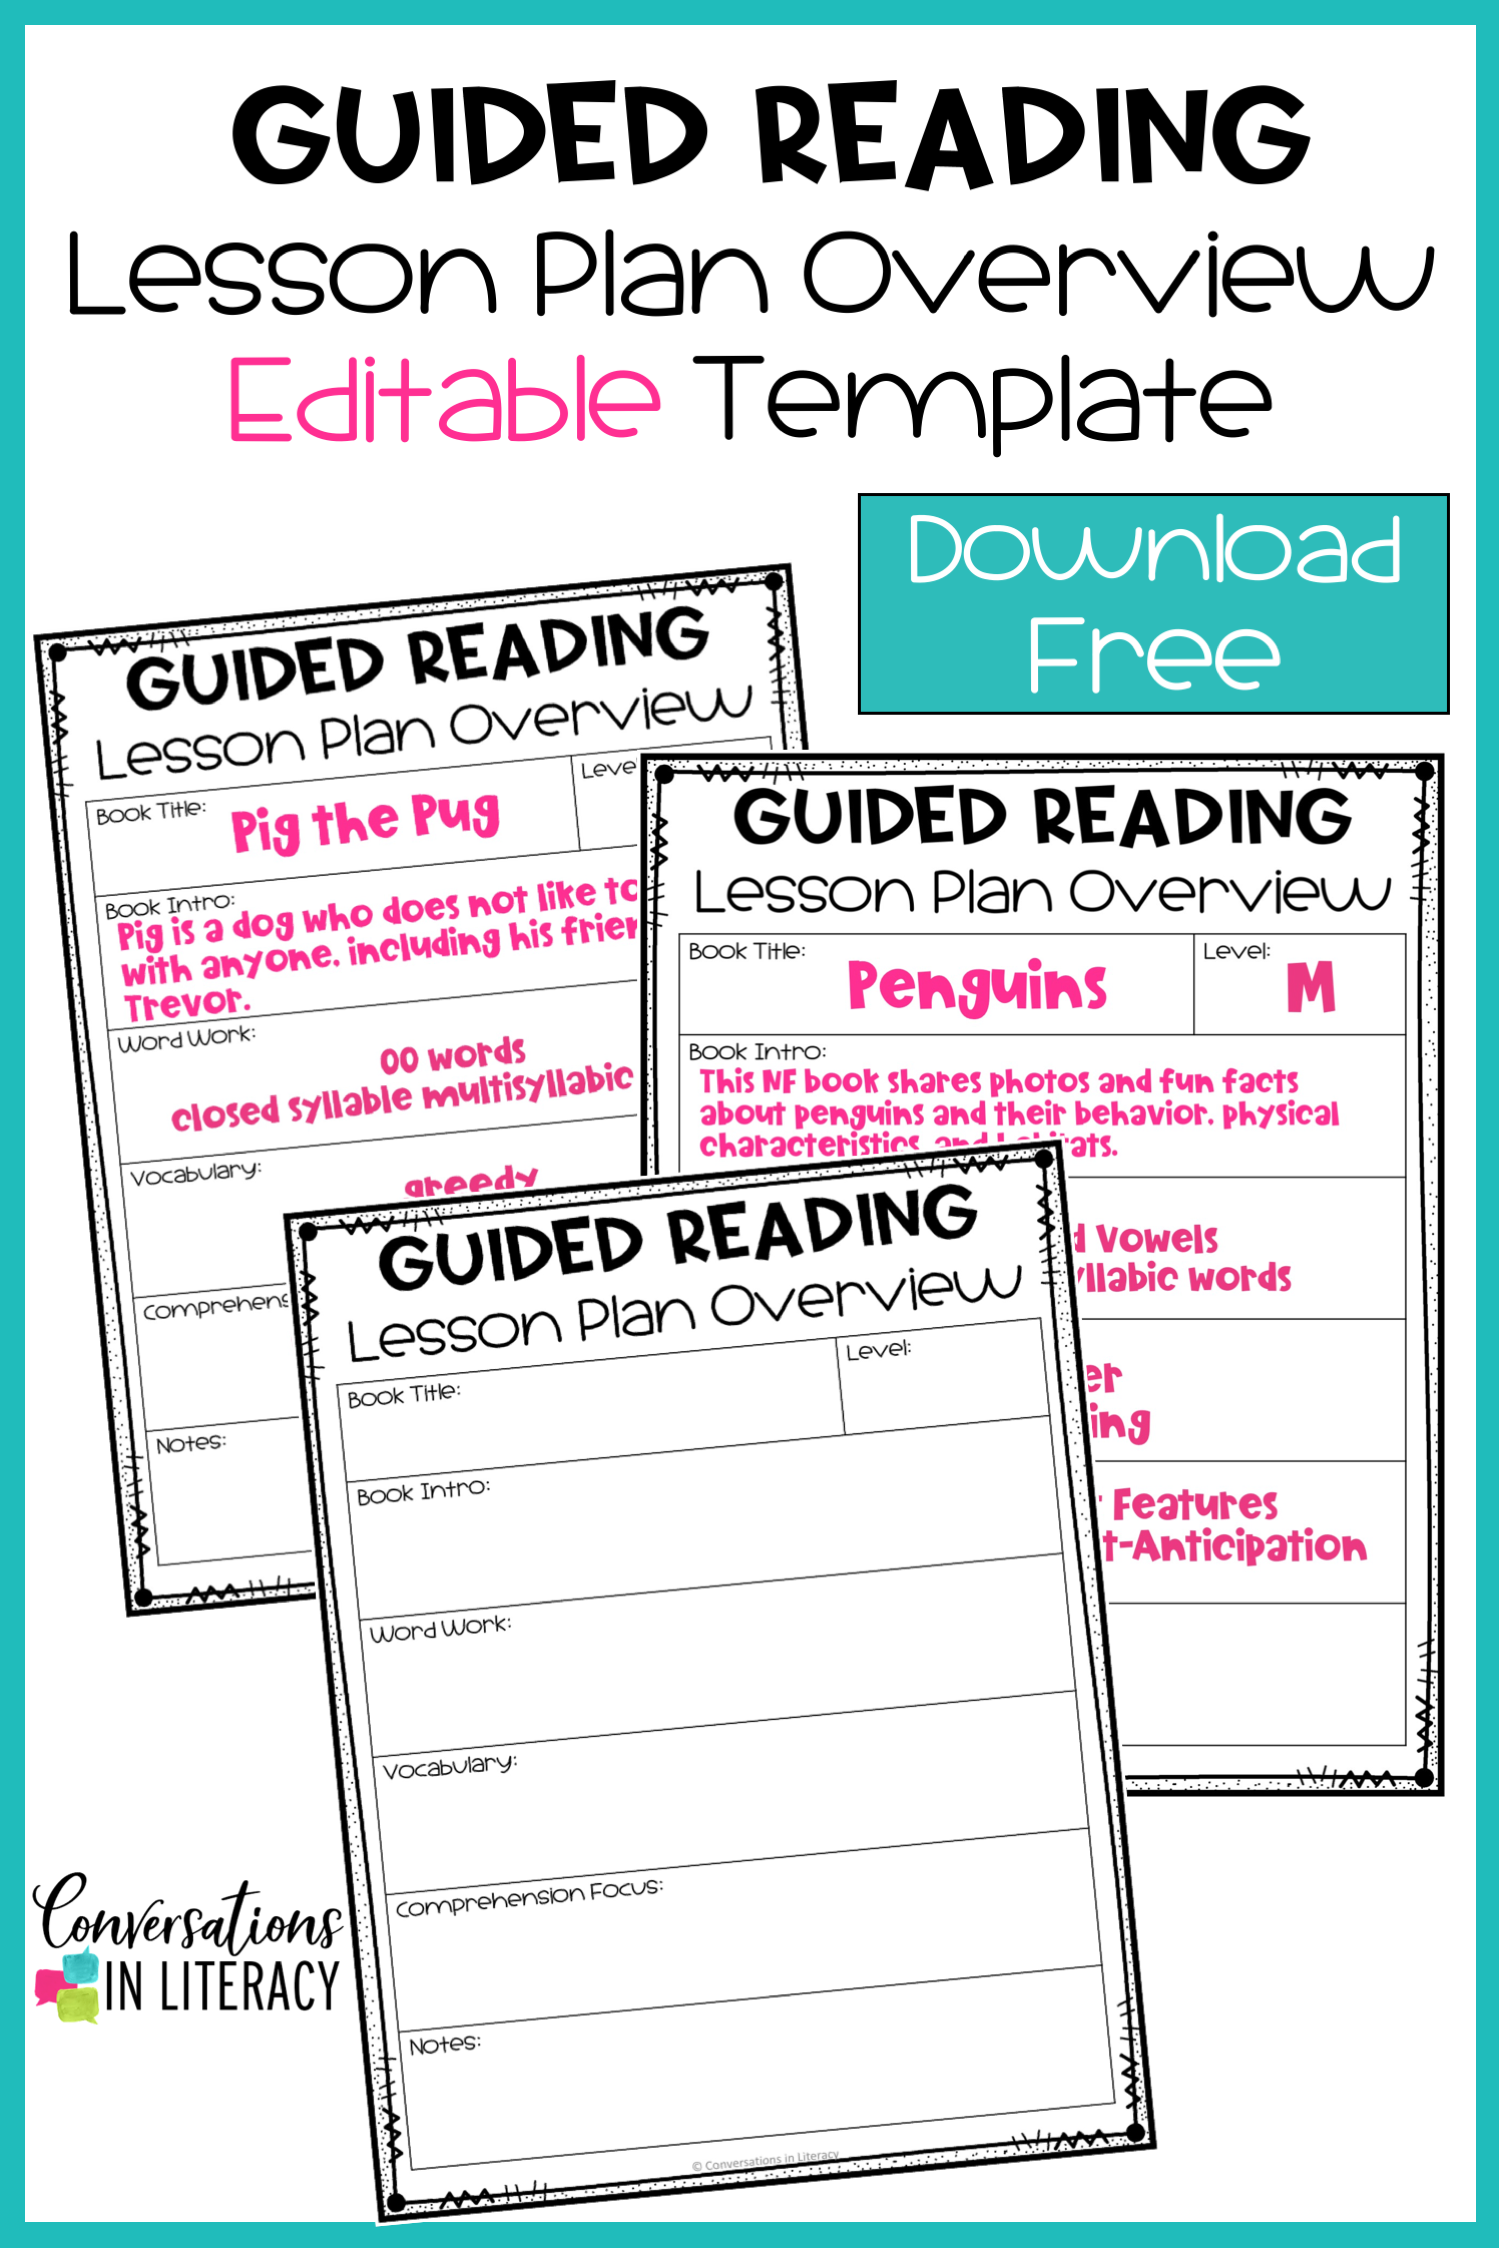 Free Editable Guided Reading Lesson Plan Overview Template To Help Teachers Make Lesso Guided Reading Lesson Plans Reading Lesson Plans Guided Reading Lessons